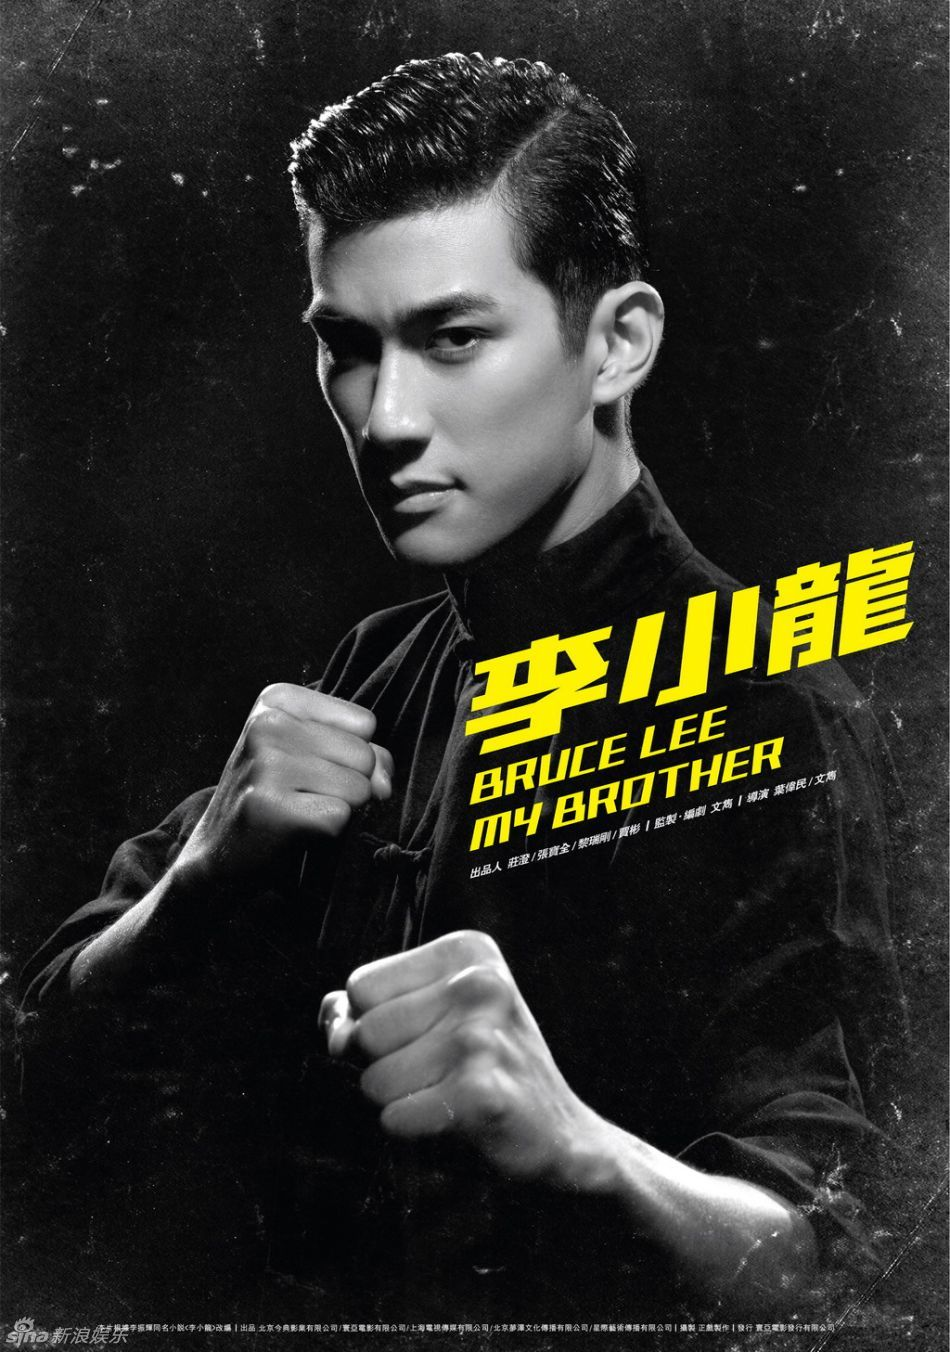 Bruce Lee, My Brother movie